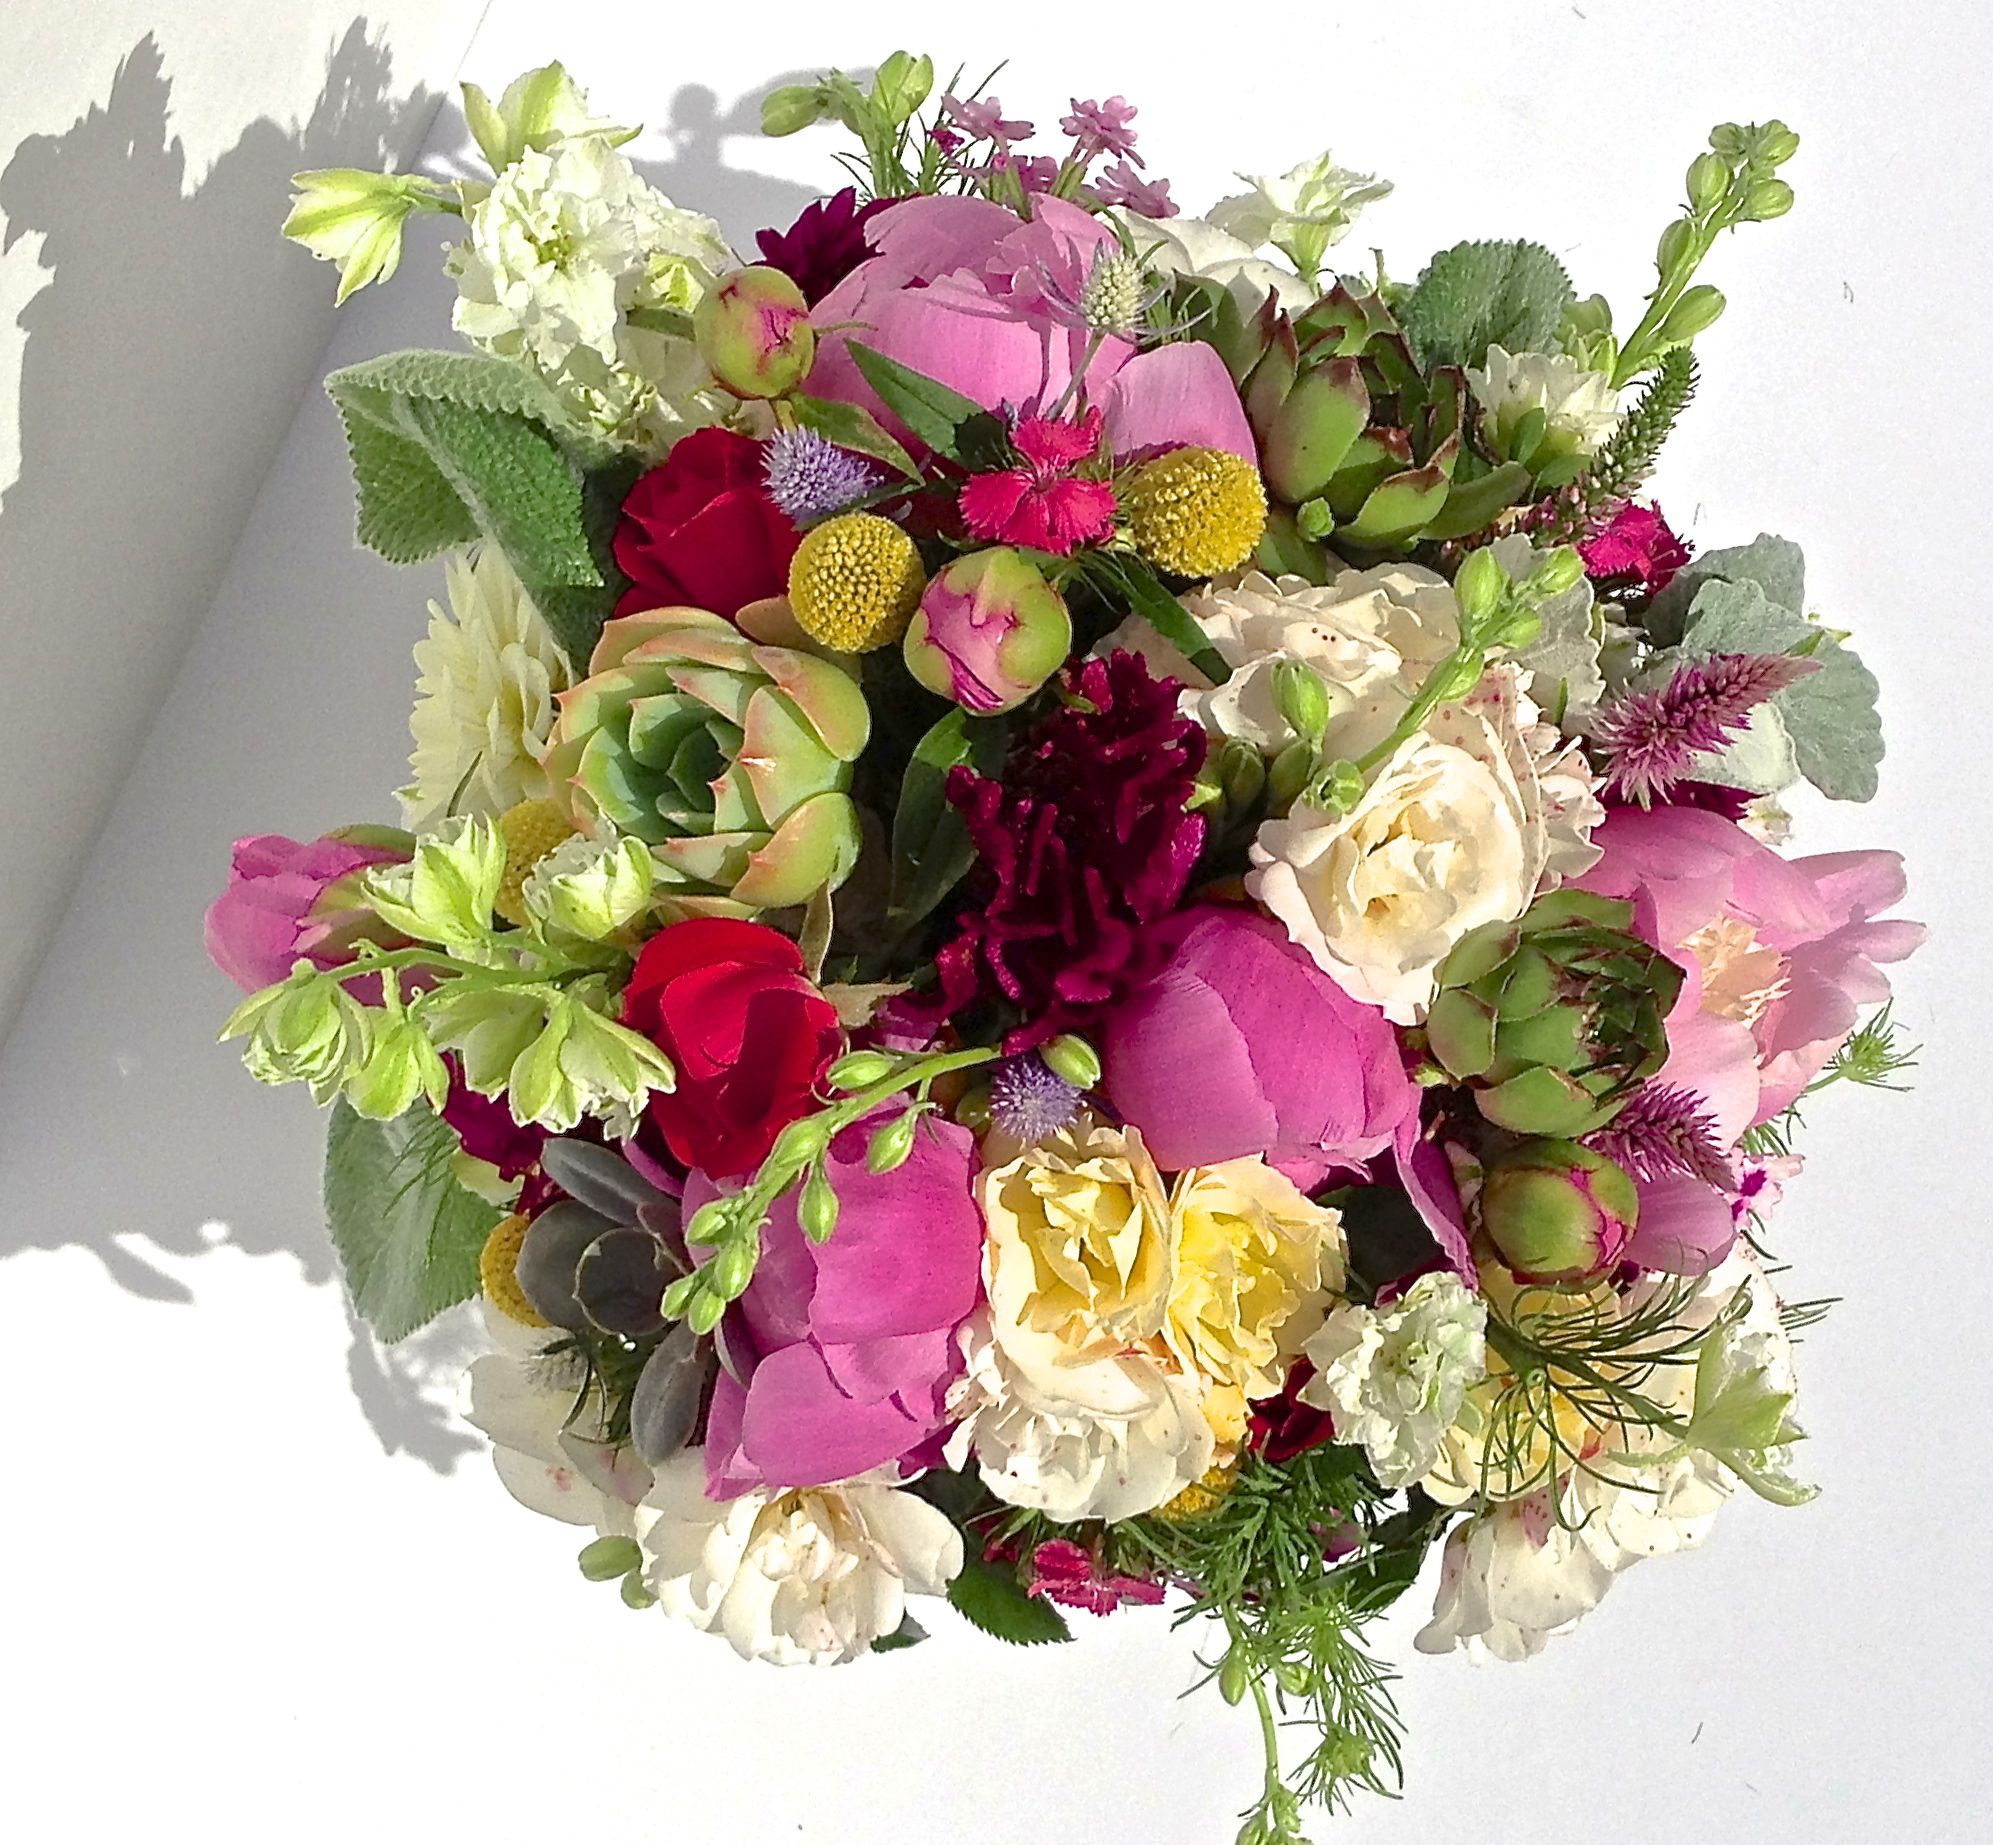 floral design any vase peonies garden roses succulents